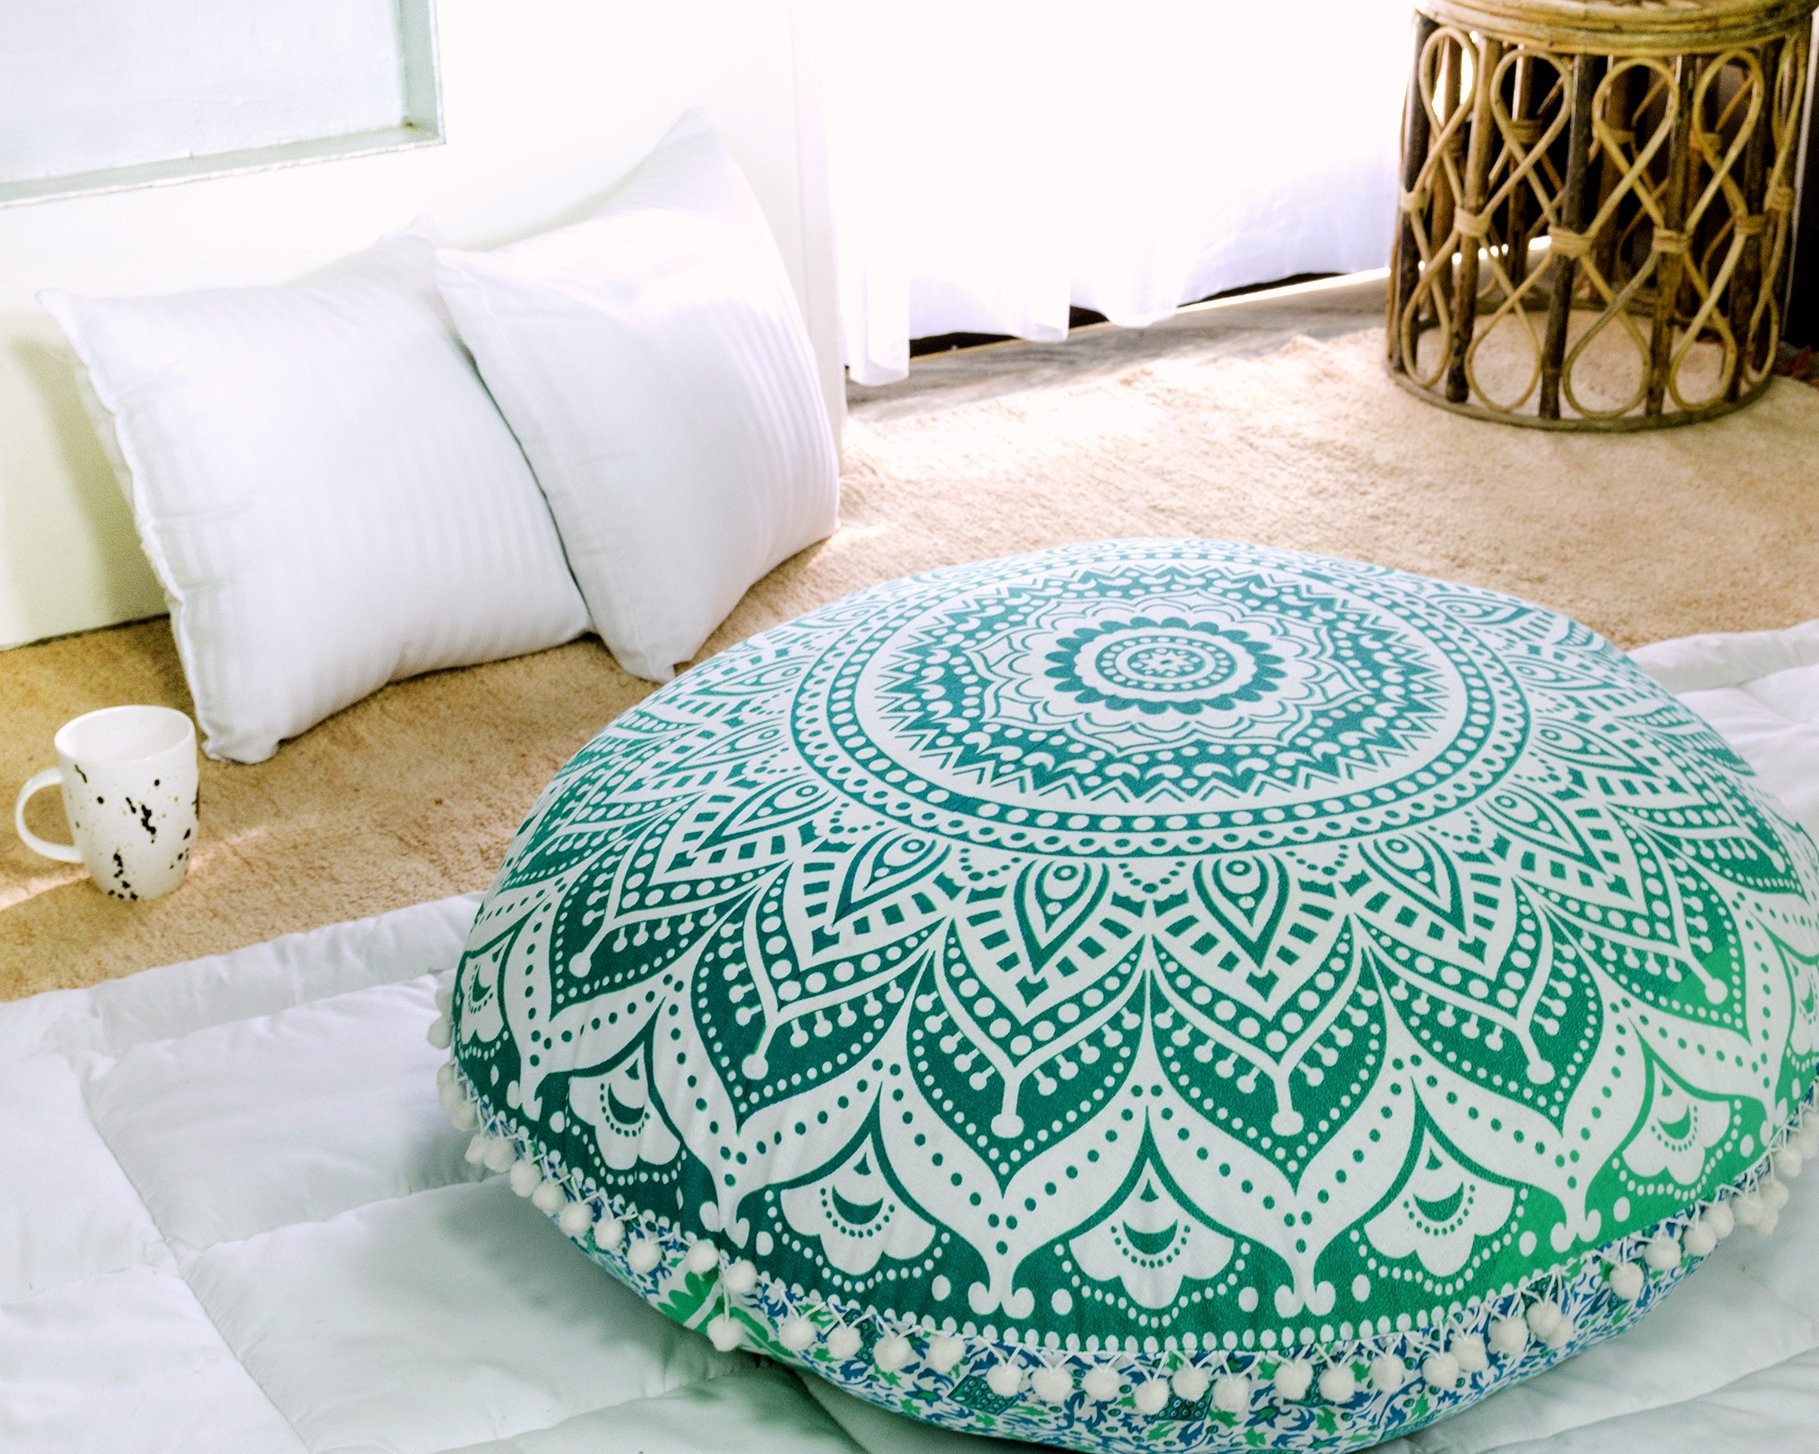 Popular Handicrafts Large Ombre Mandala Round Hippie Floor Pillow - Cushion - Pouf Cover Bohemian Yoga Decor Floor Cushion Case - 32'' Green by Popular Handicrafts (Image #3)